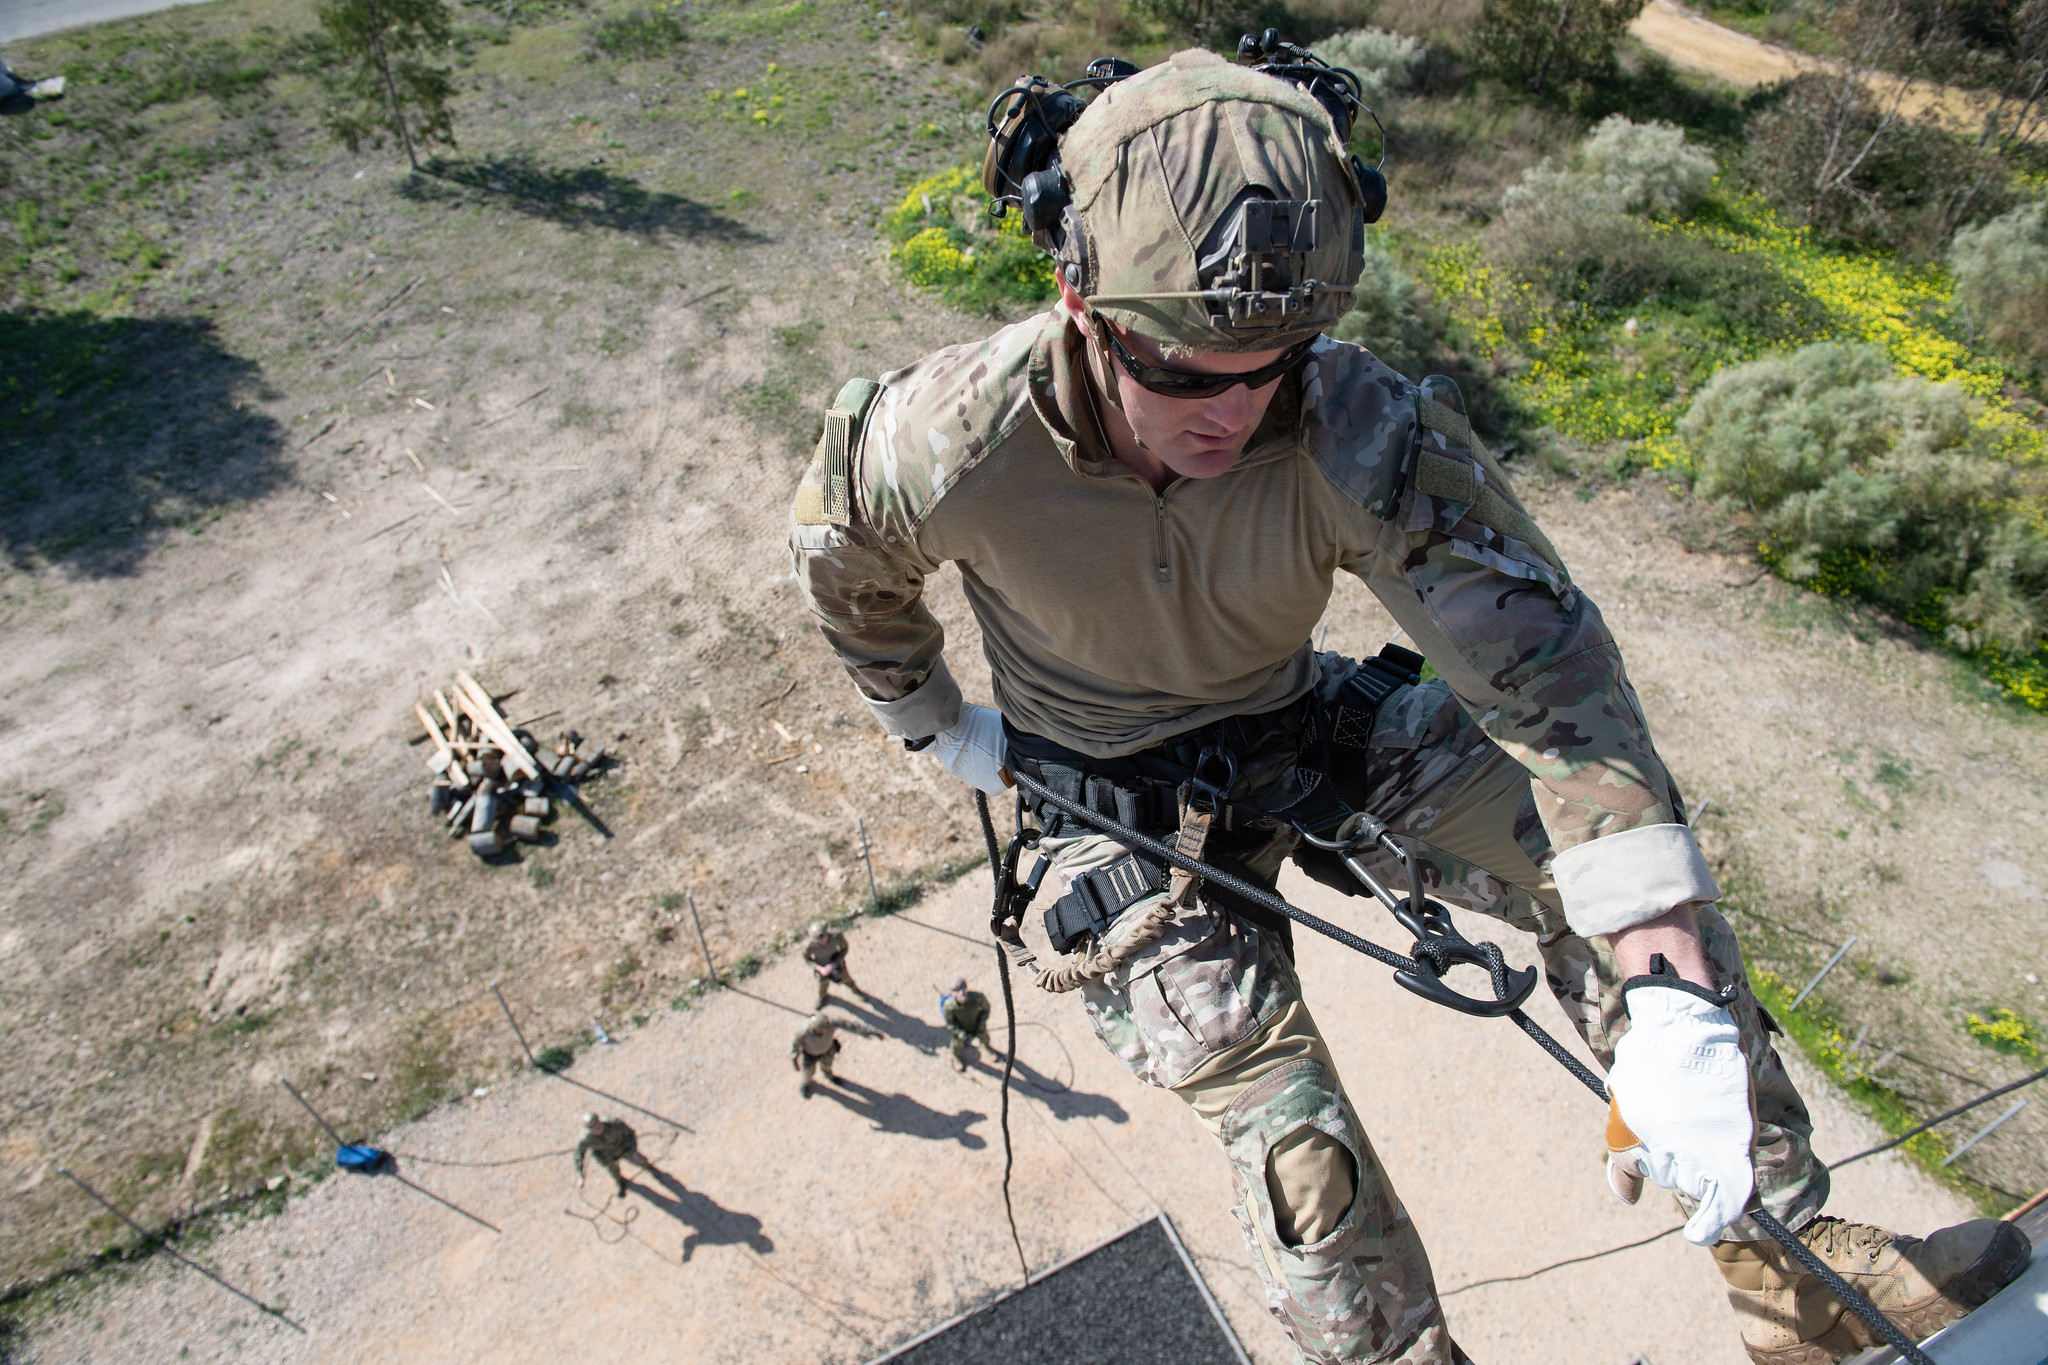 An explosive ordnance technician rappels down a tower at Rota, Spain, as part of helicopter rope suspension technique cast master renewal training and initial training for support personnel on Feb. 20, 2020. (Mass Communication Specialist 3rd Class Katie Cox/Navy)